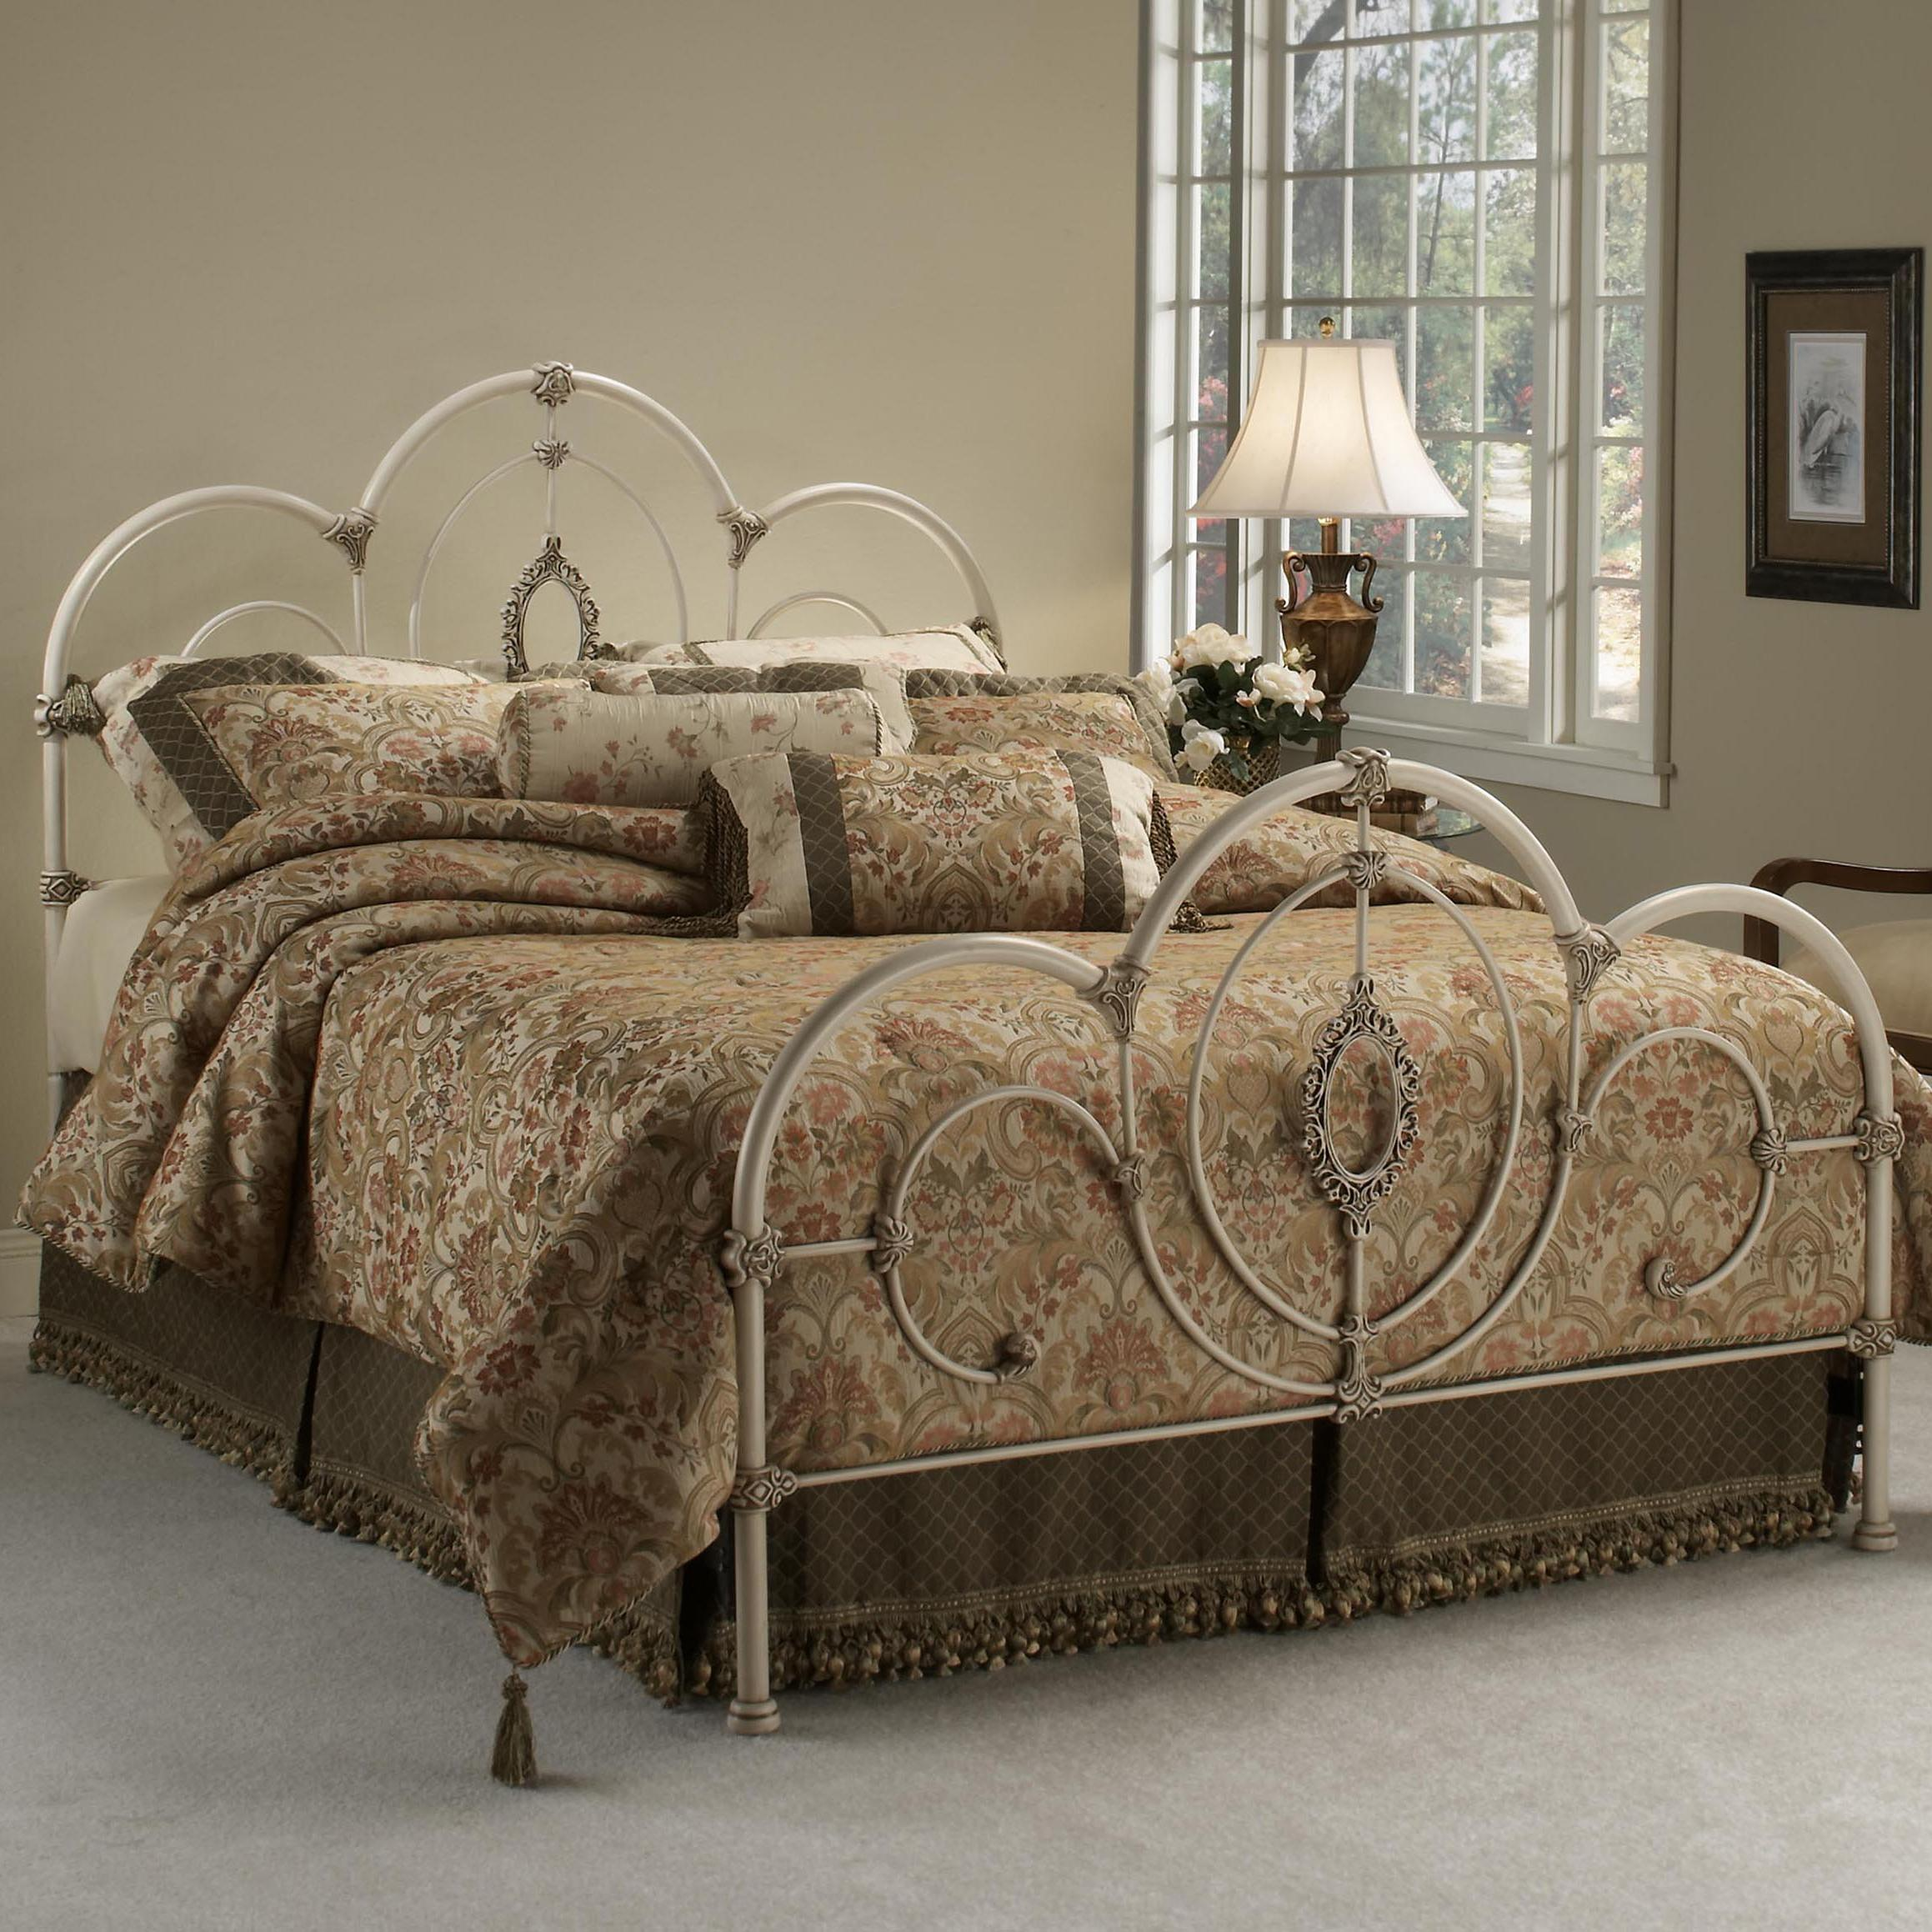 Hillsdale Metal Beds Full Victoria Bed - Item Number: 1310BFR